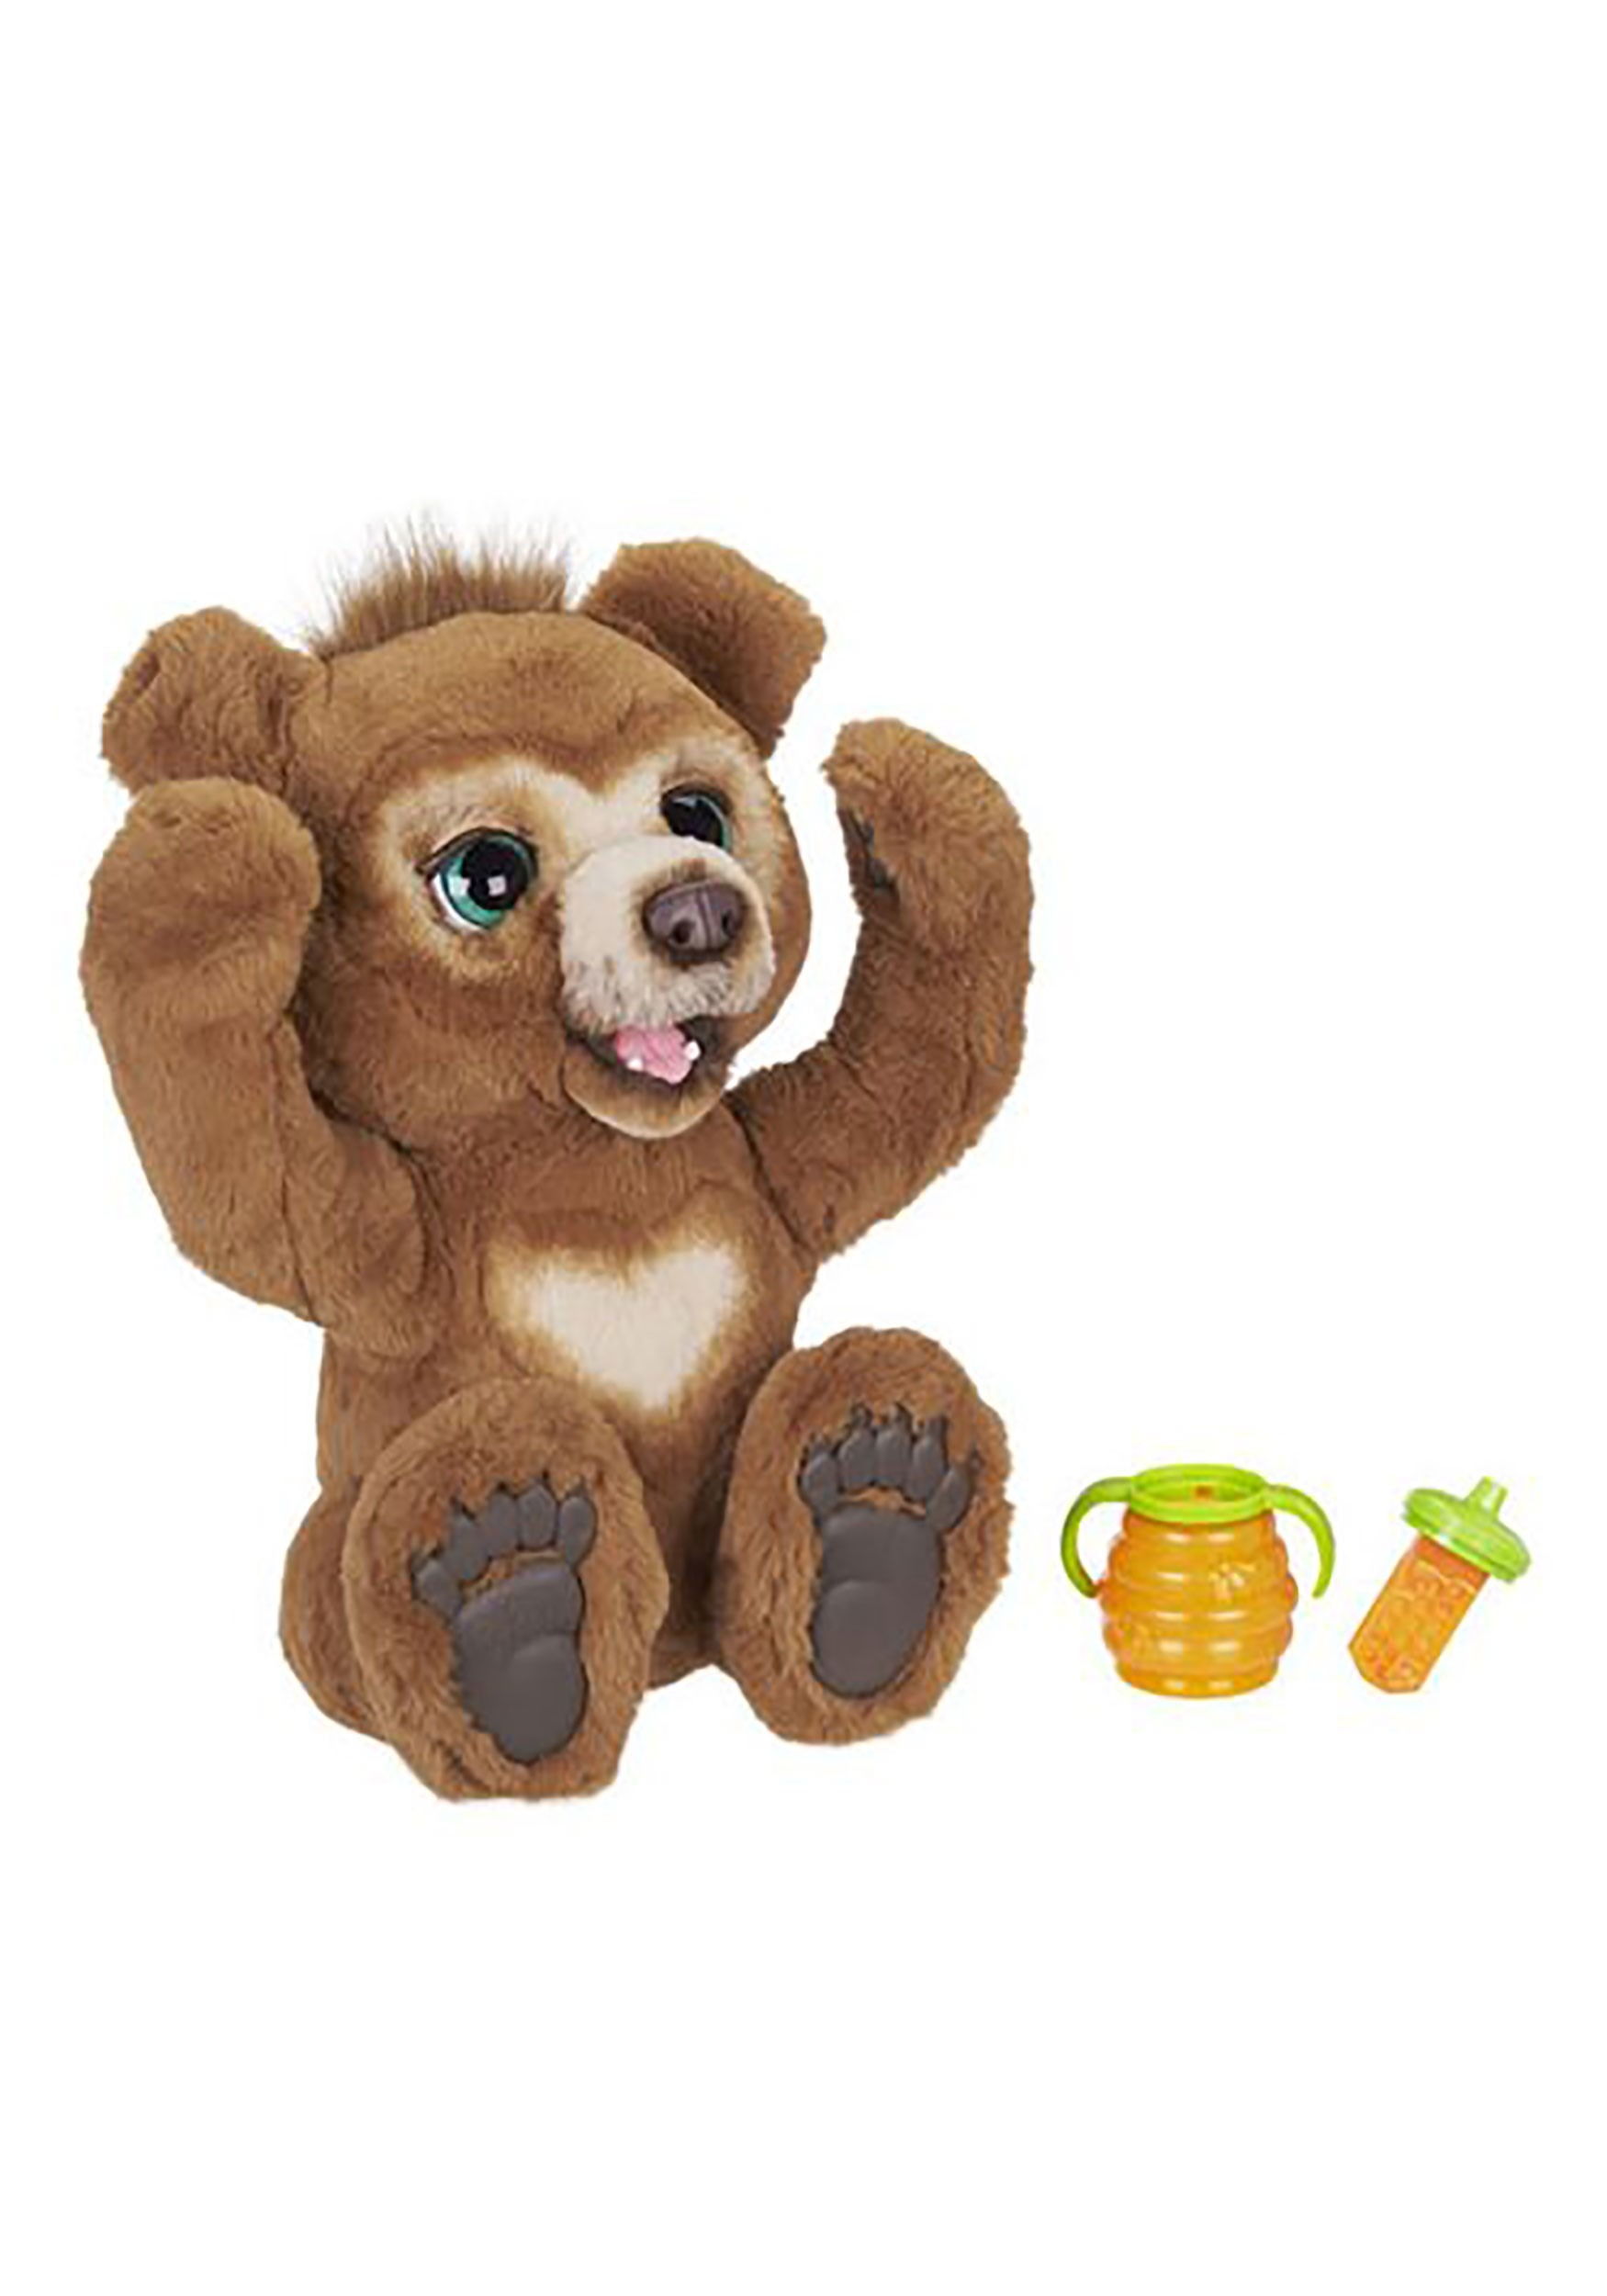 Interactive Cubby the Curious Bear FurReal Stuffed Toy